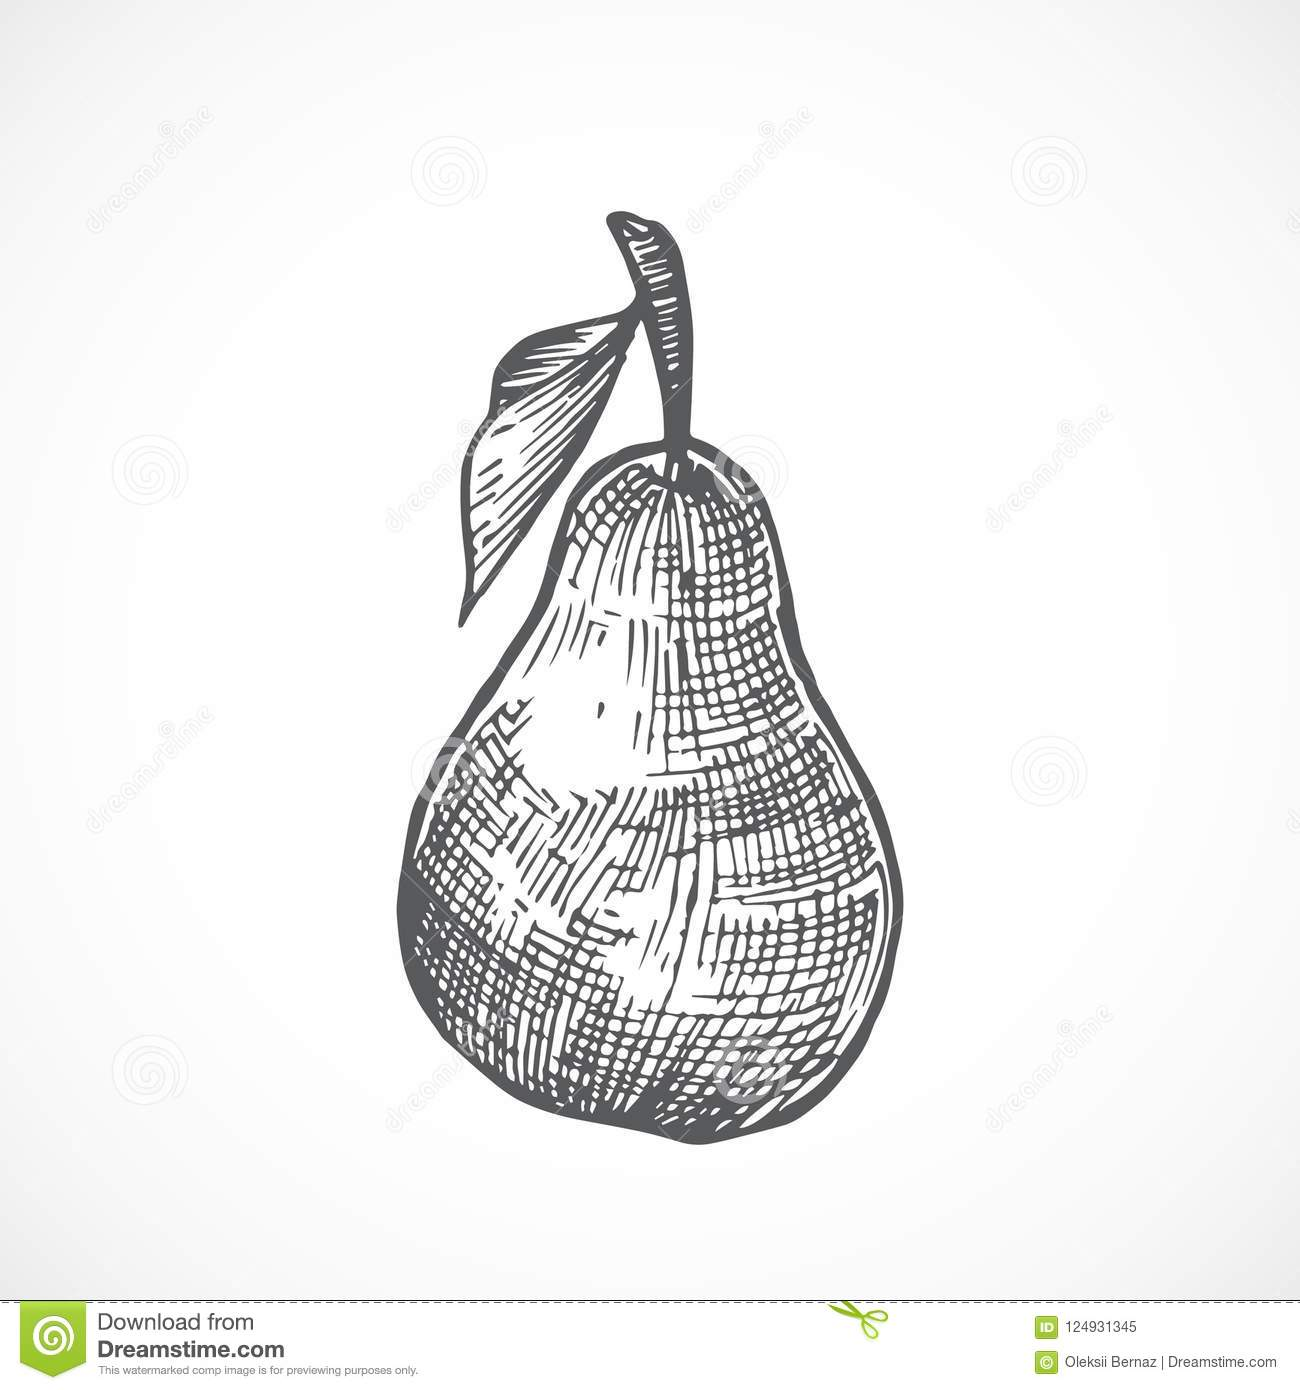 Pear with leaf hand drawn vector illustration abstract fruit sketch